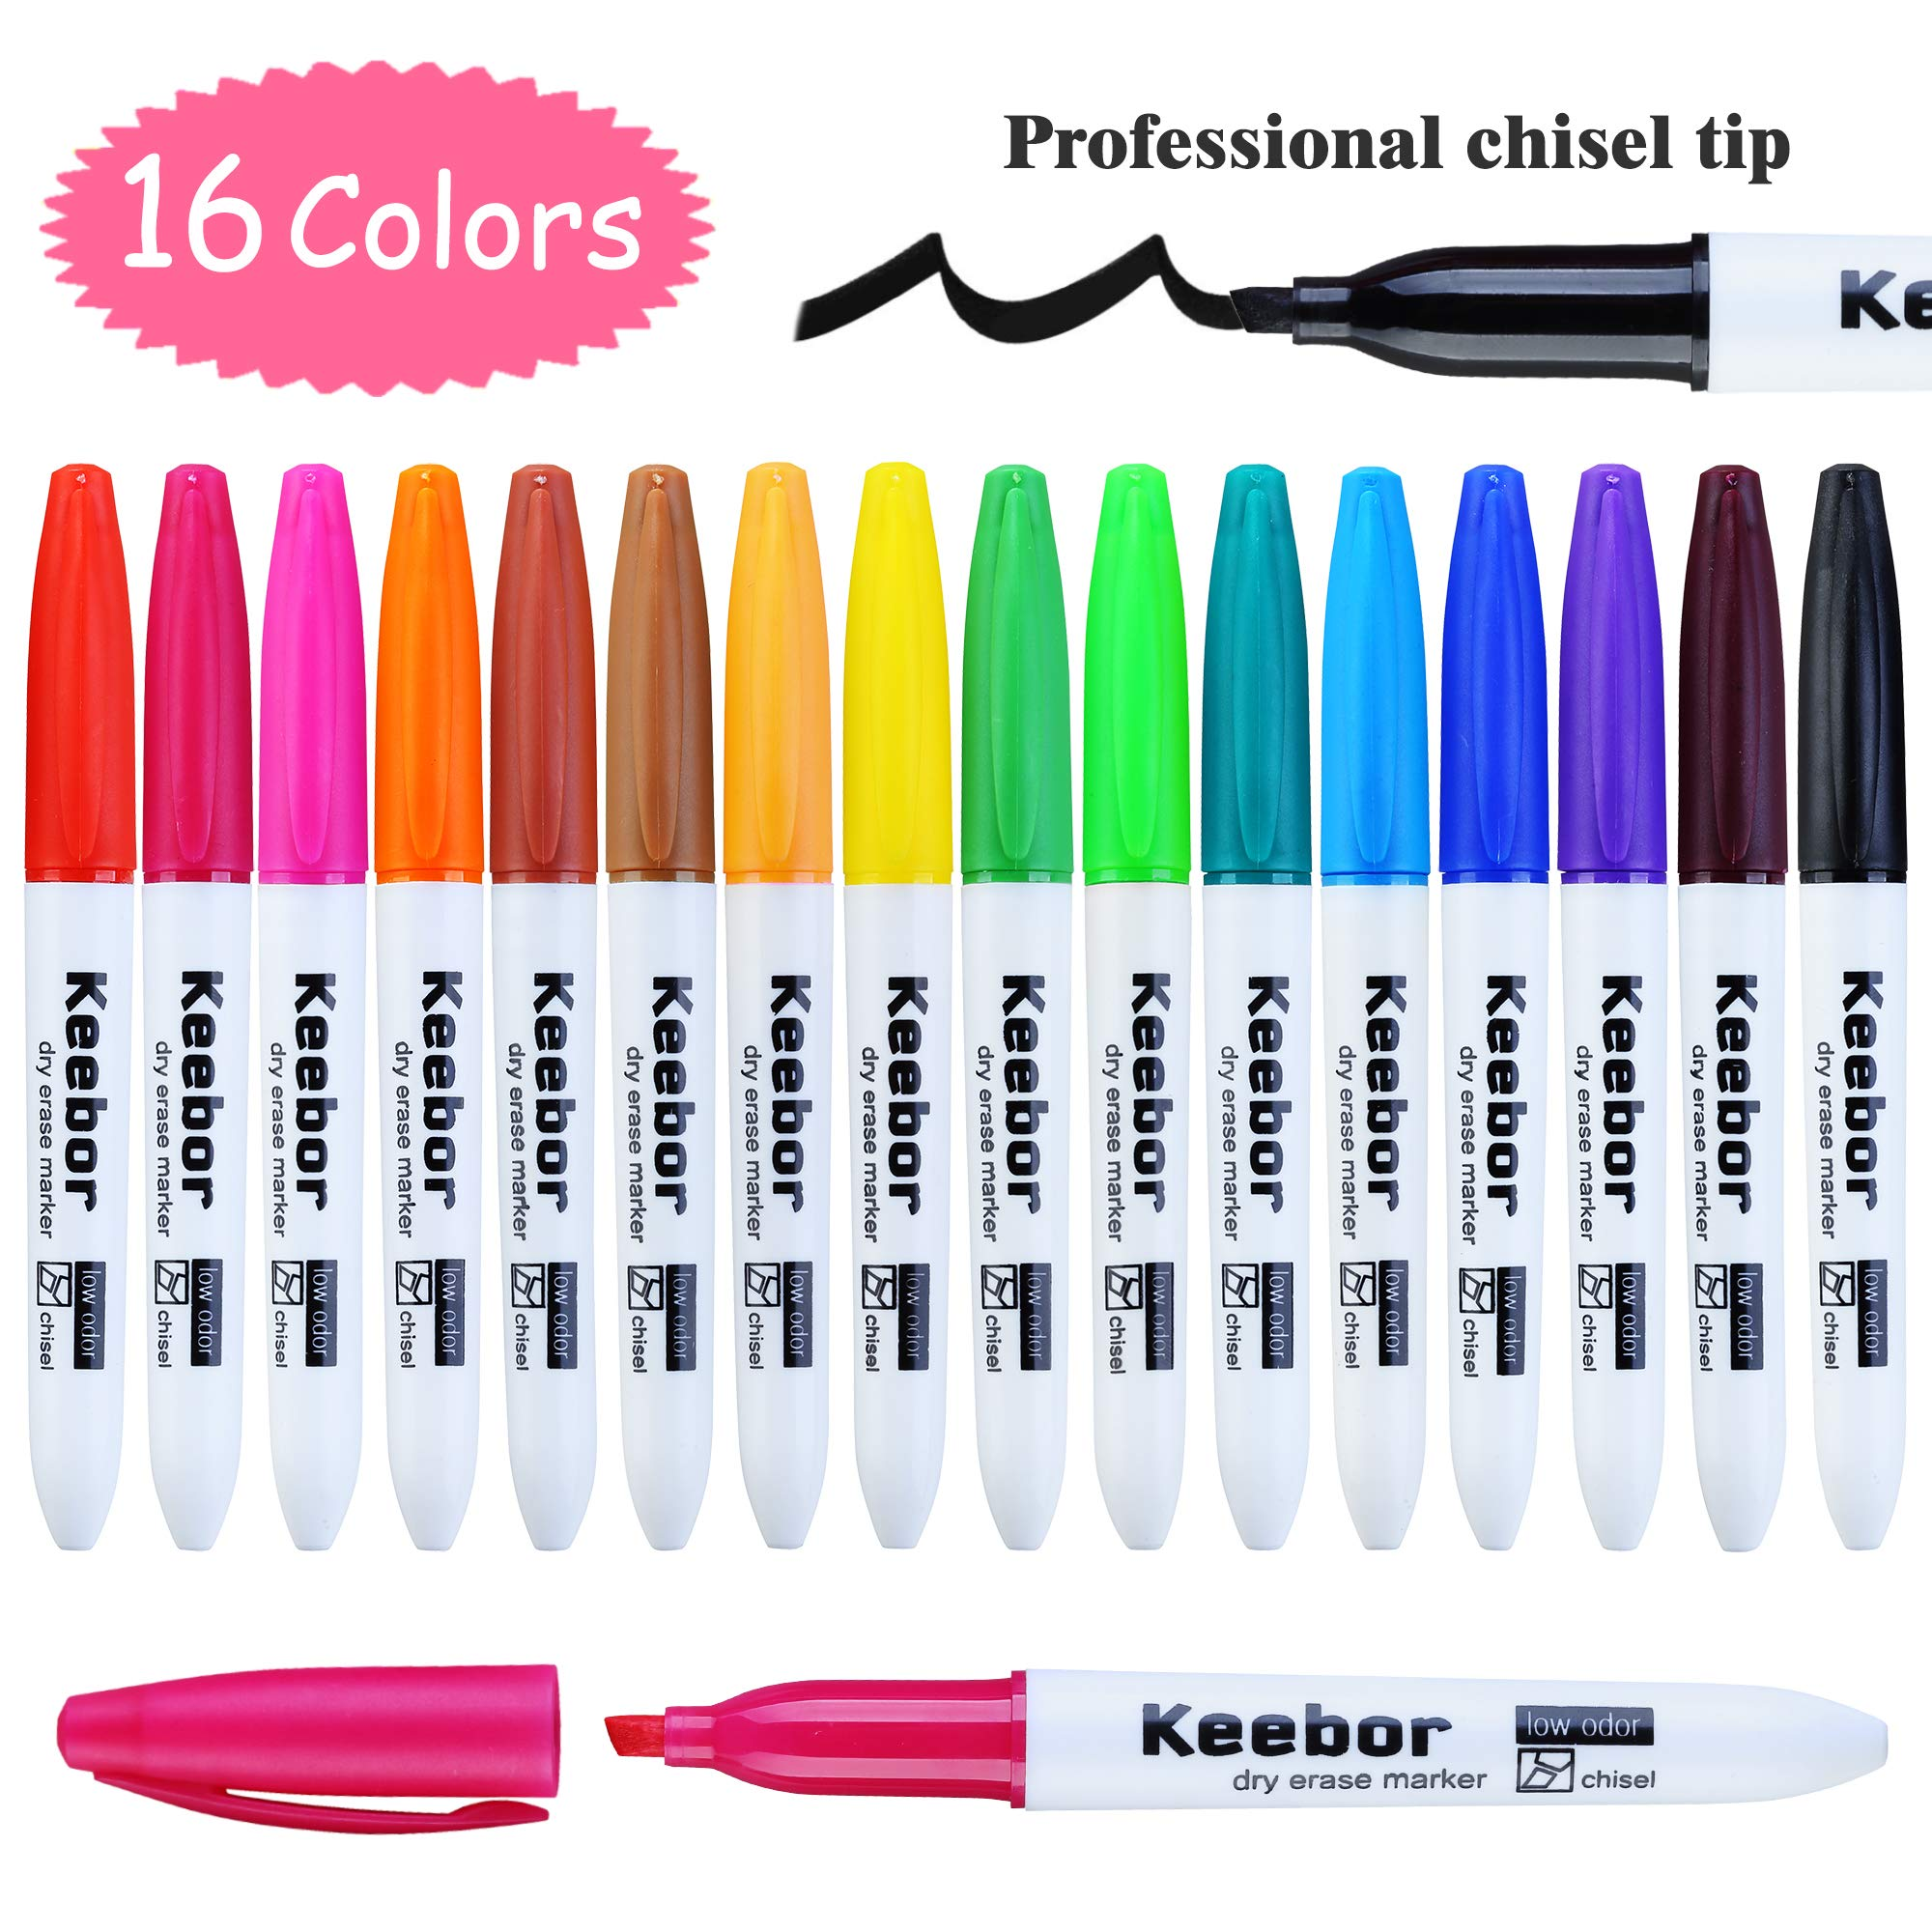 Keebor Basic Low Odor Dry Erase Markers Chisel Tip Whiteboard Markers, Assorted Color, 16 Pack